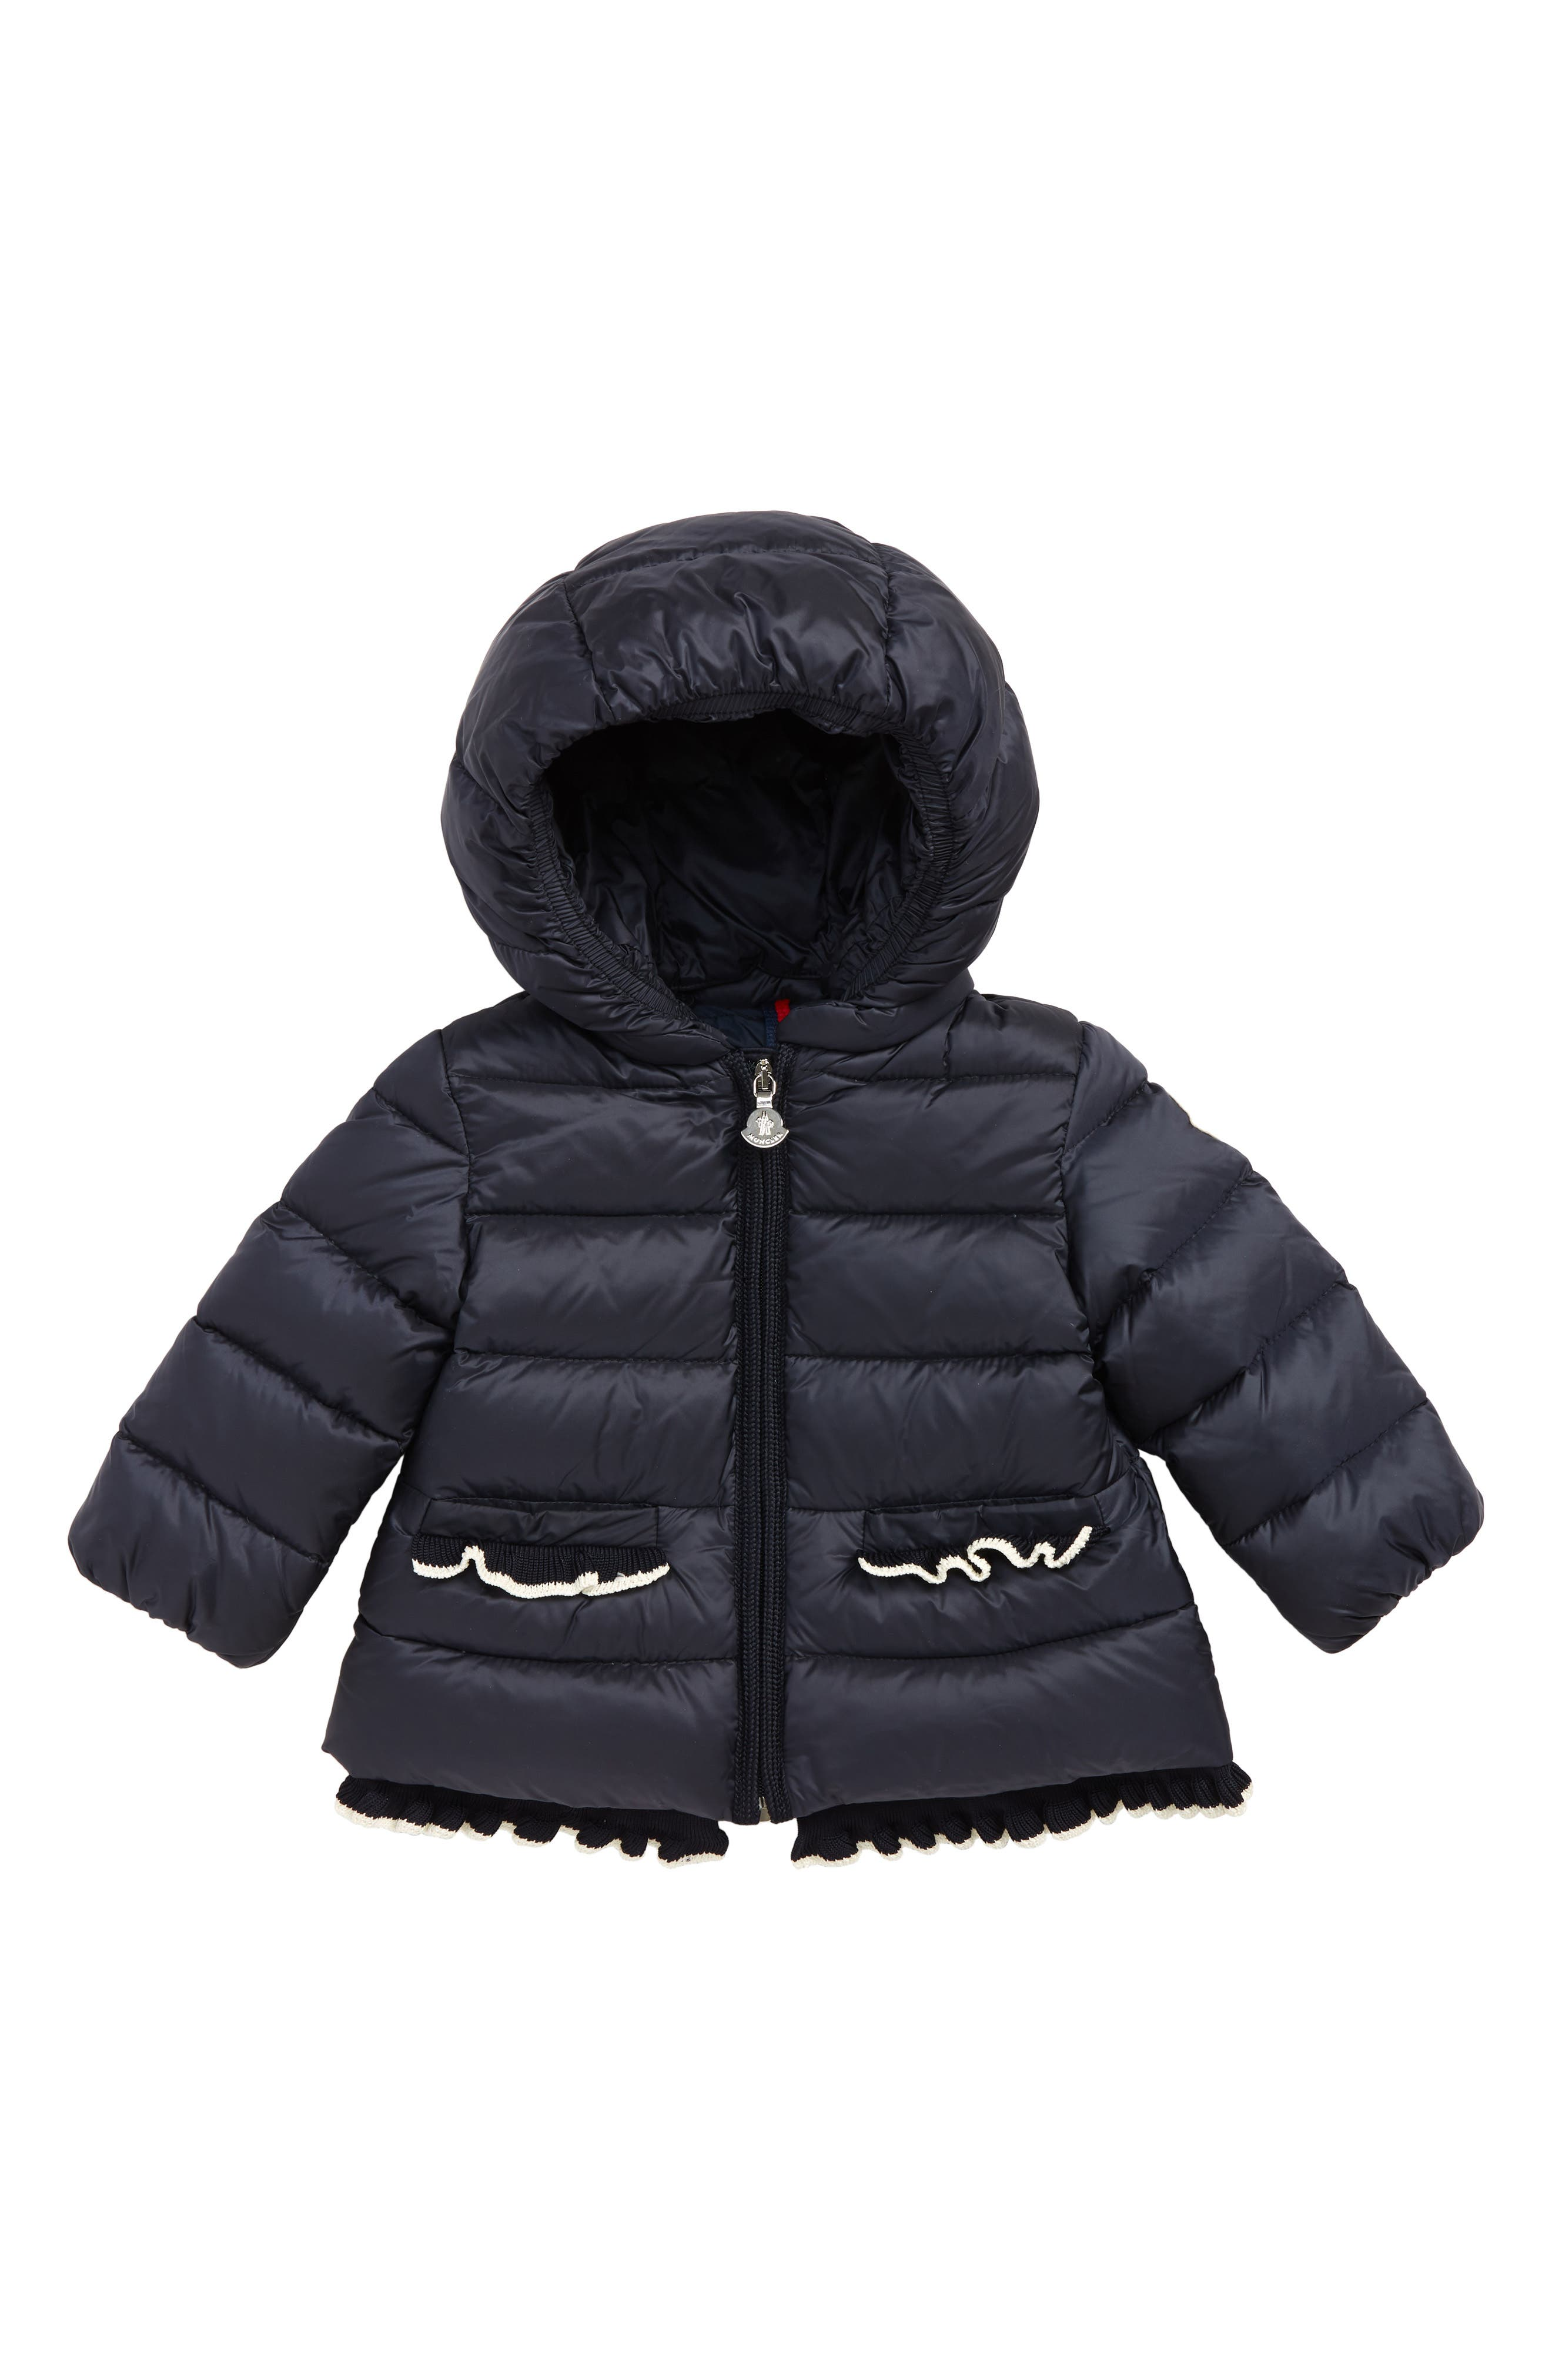 9f697211a052 Moncler Baby Items  Clothing